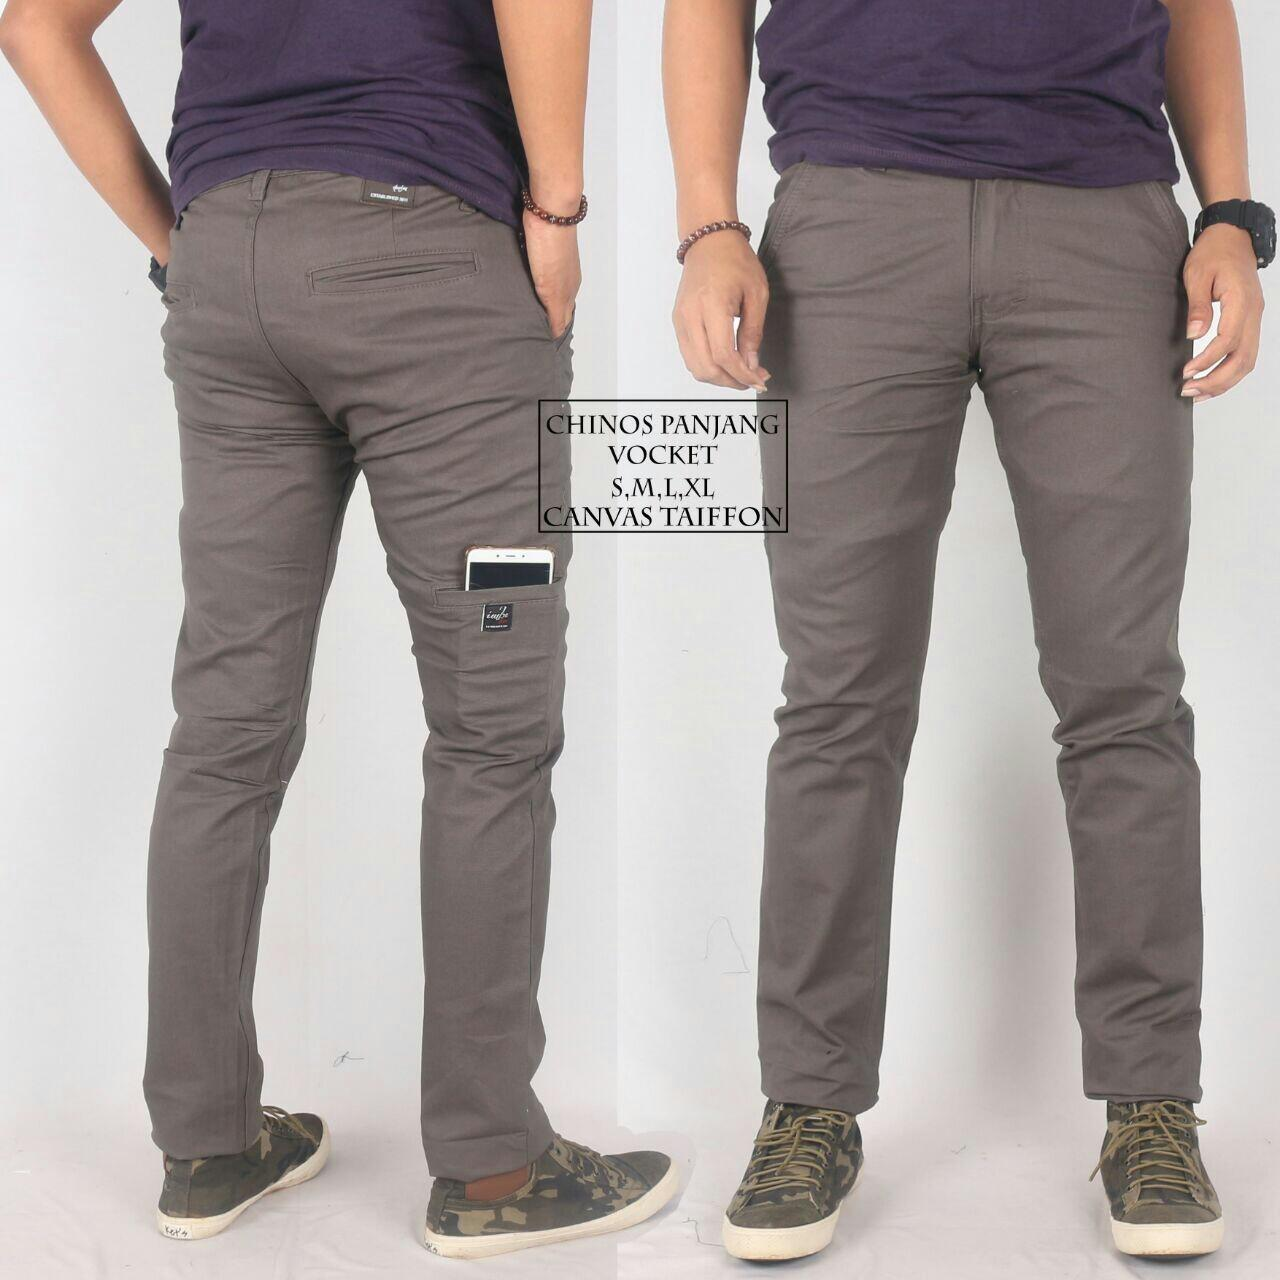 Celana Chino Pants Panjang Pria/celana Chino Pocket Cream By Biostore.